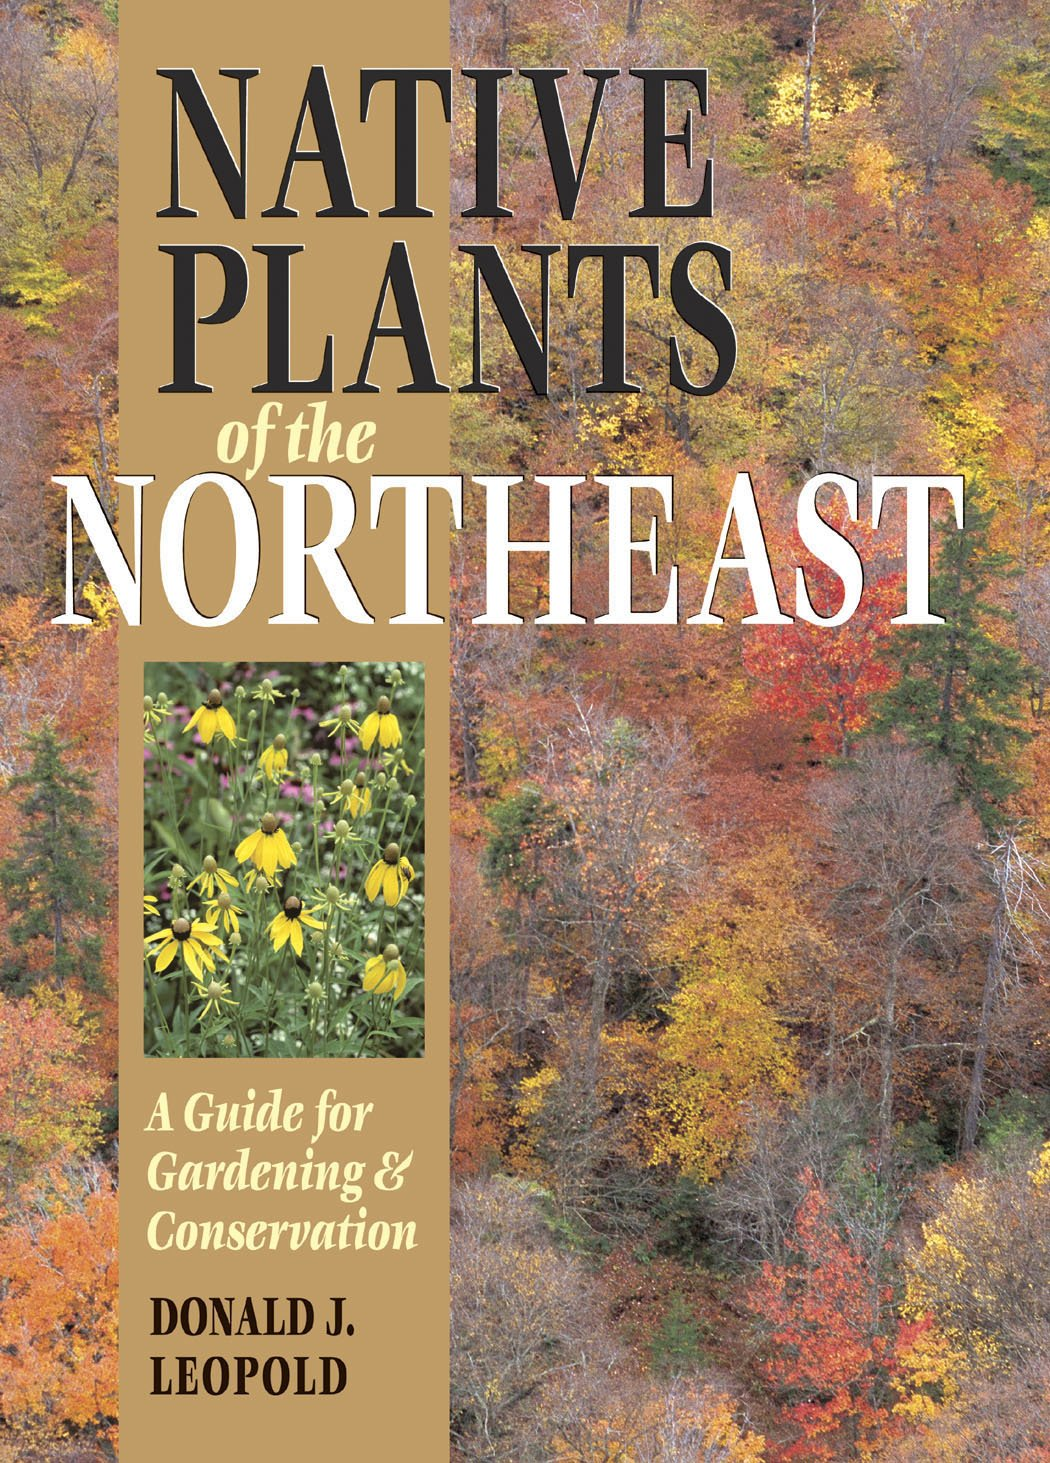 Native Plants of the Northeast: A Guide for Gardening and Conservation